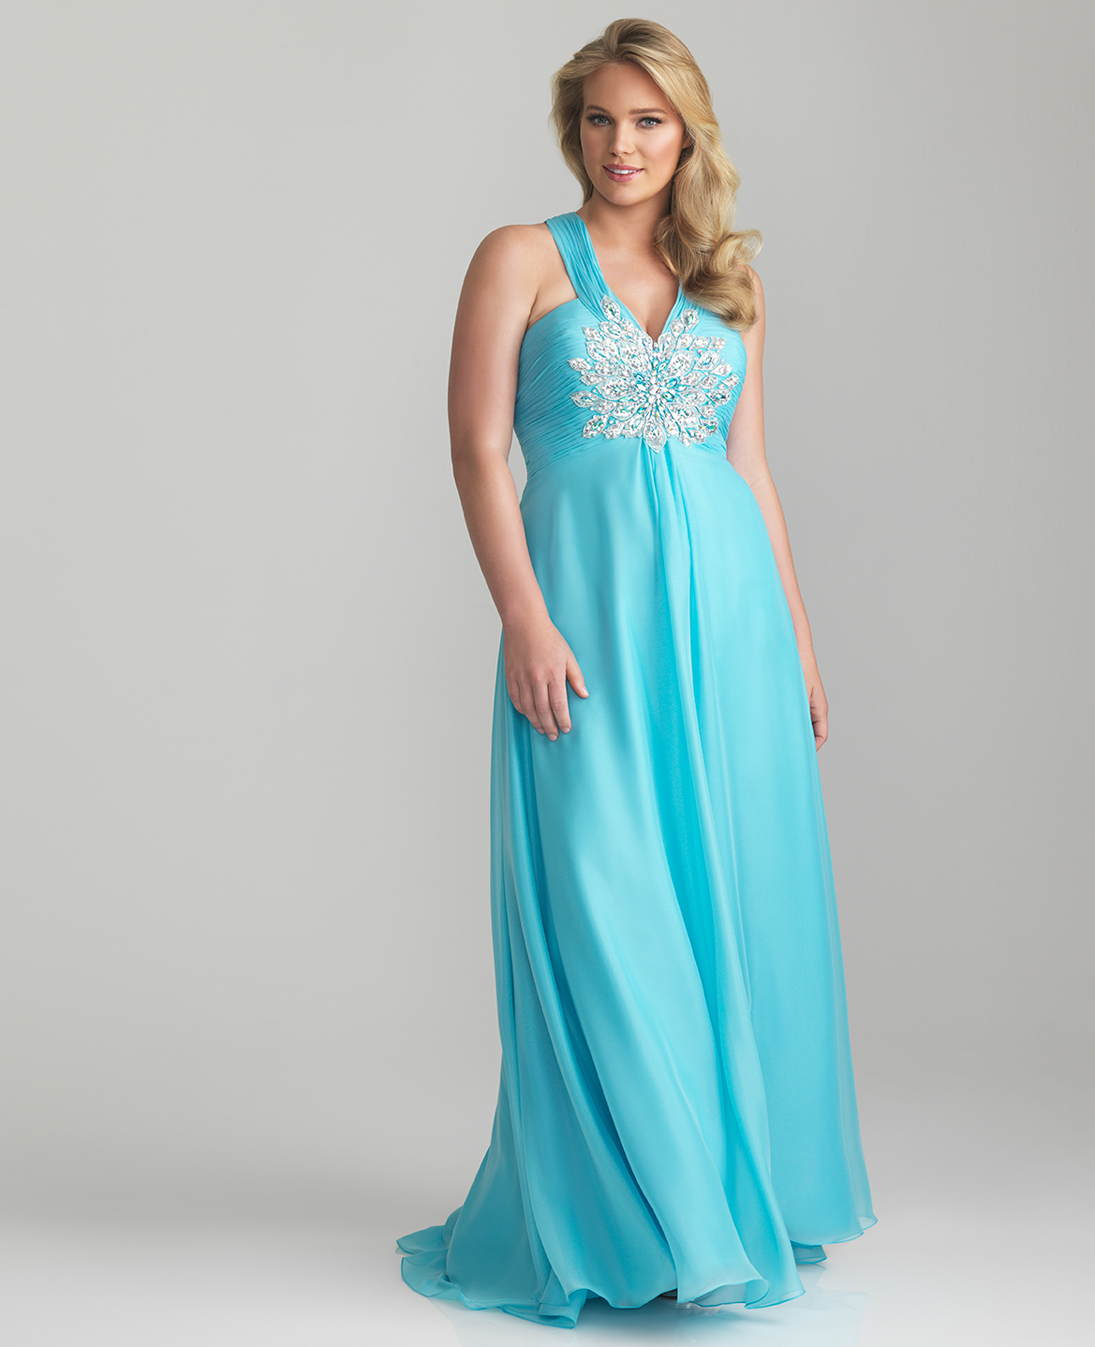 WhiteAzalea Plus Size Dresses: January 2013